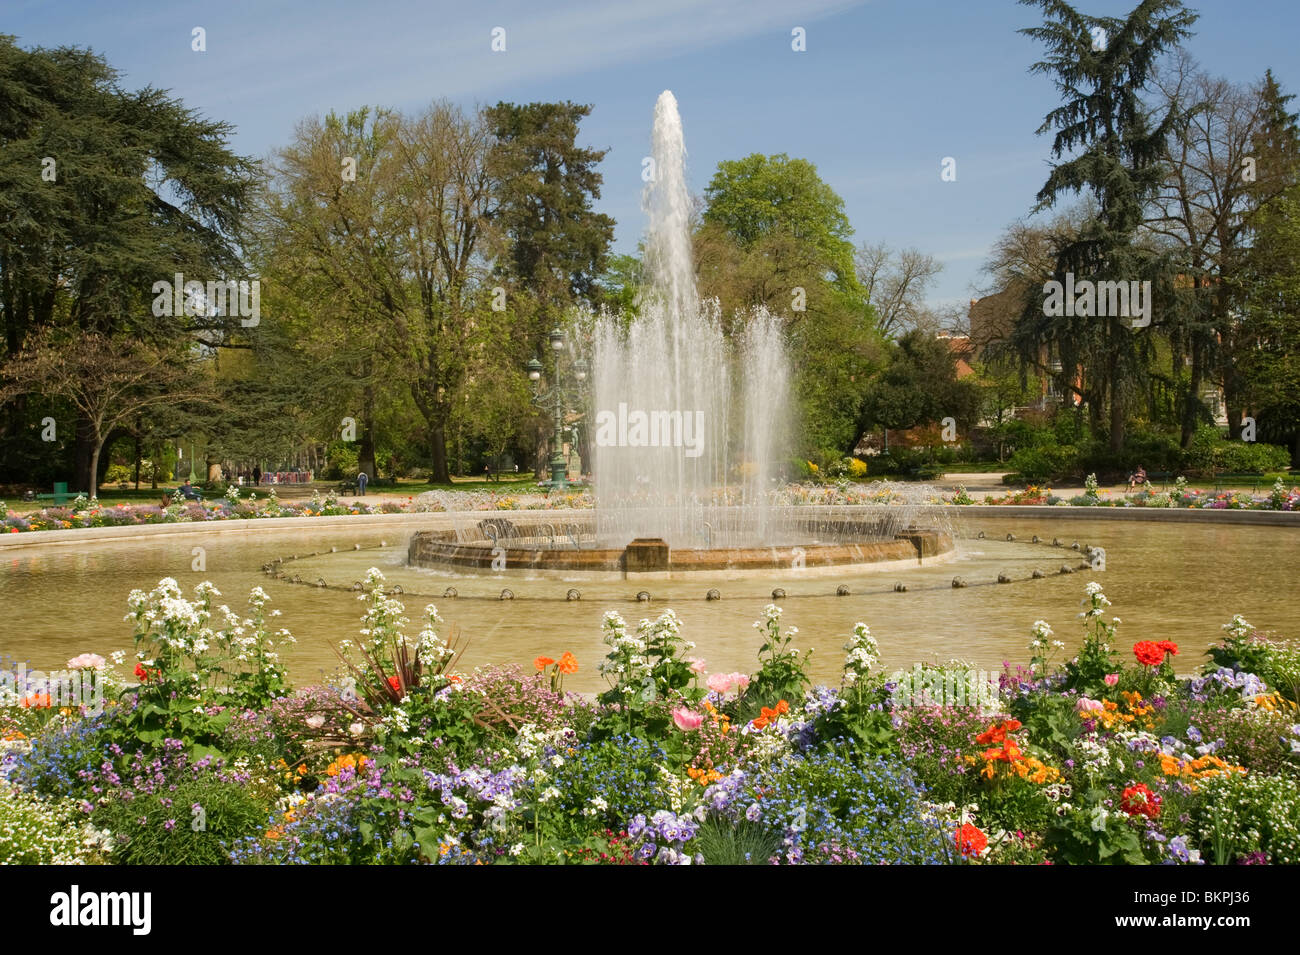 Jardin du Grand Rond and Fountain with Beautiful Flower Beds ...